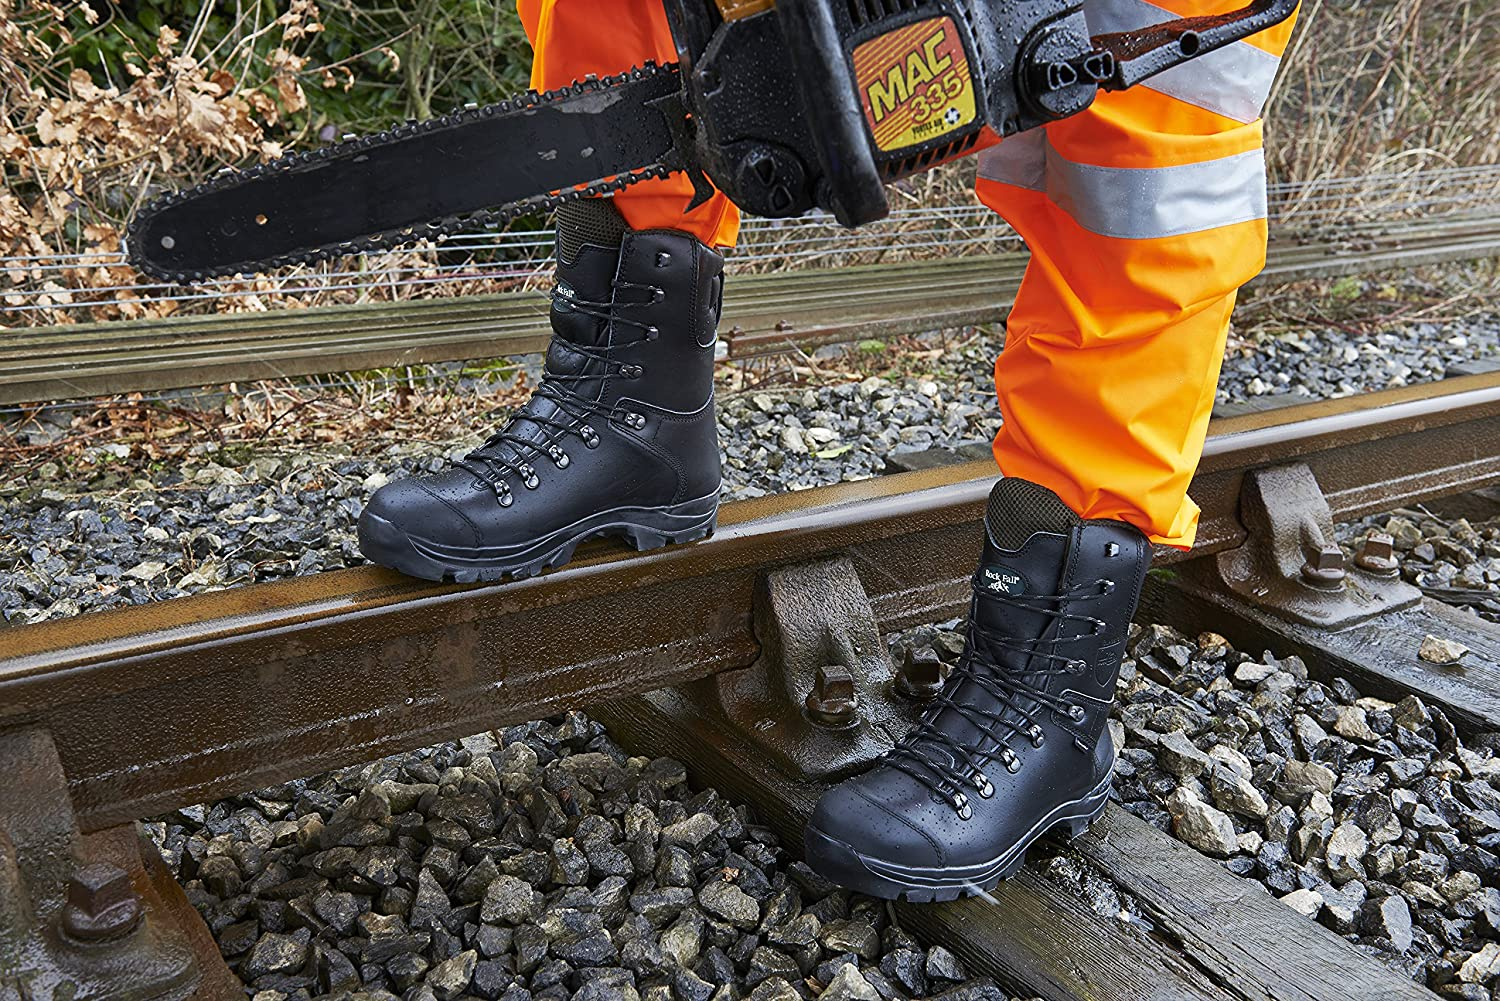 Rock Fall RF328 Chatsworth Black Chainsaw Boots Kevlar Steel Toe Cap Safety Boot